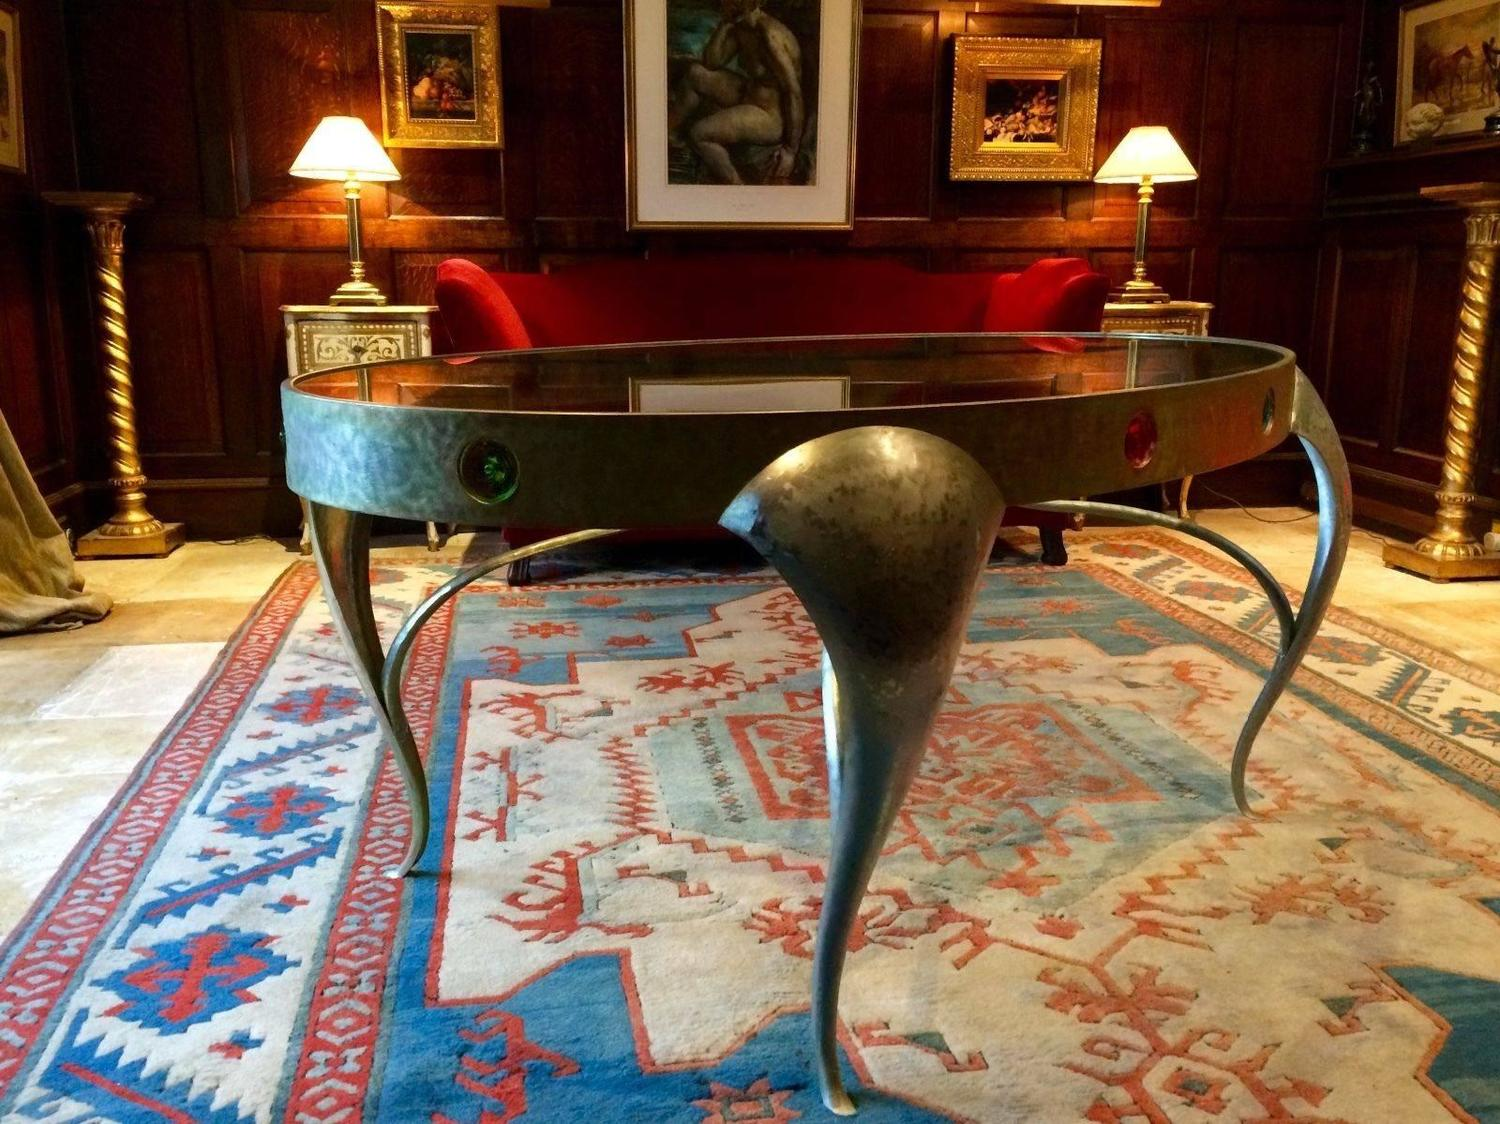 Bespoke console table centre table circa 1960s steel and glass unique for sale at 1stdibs Bespoke glass furniture